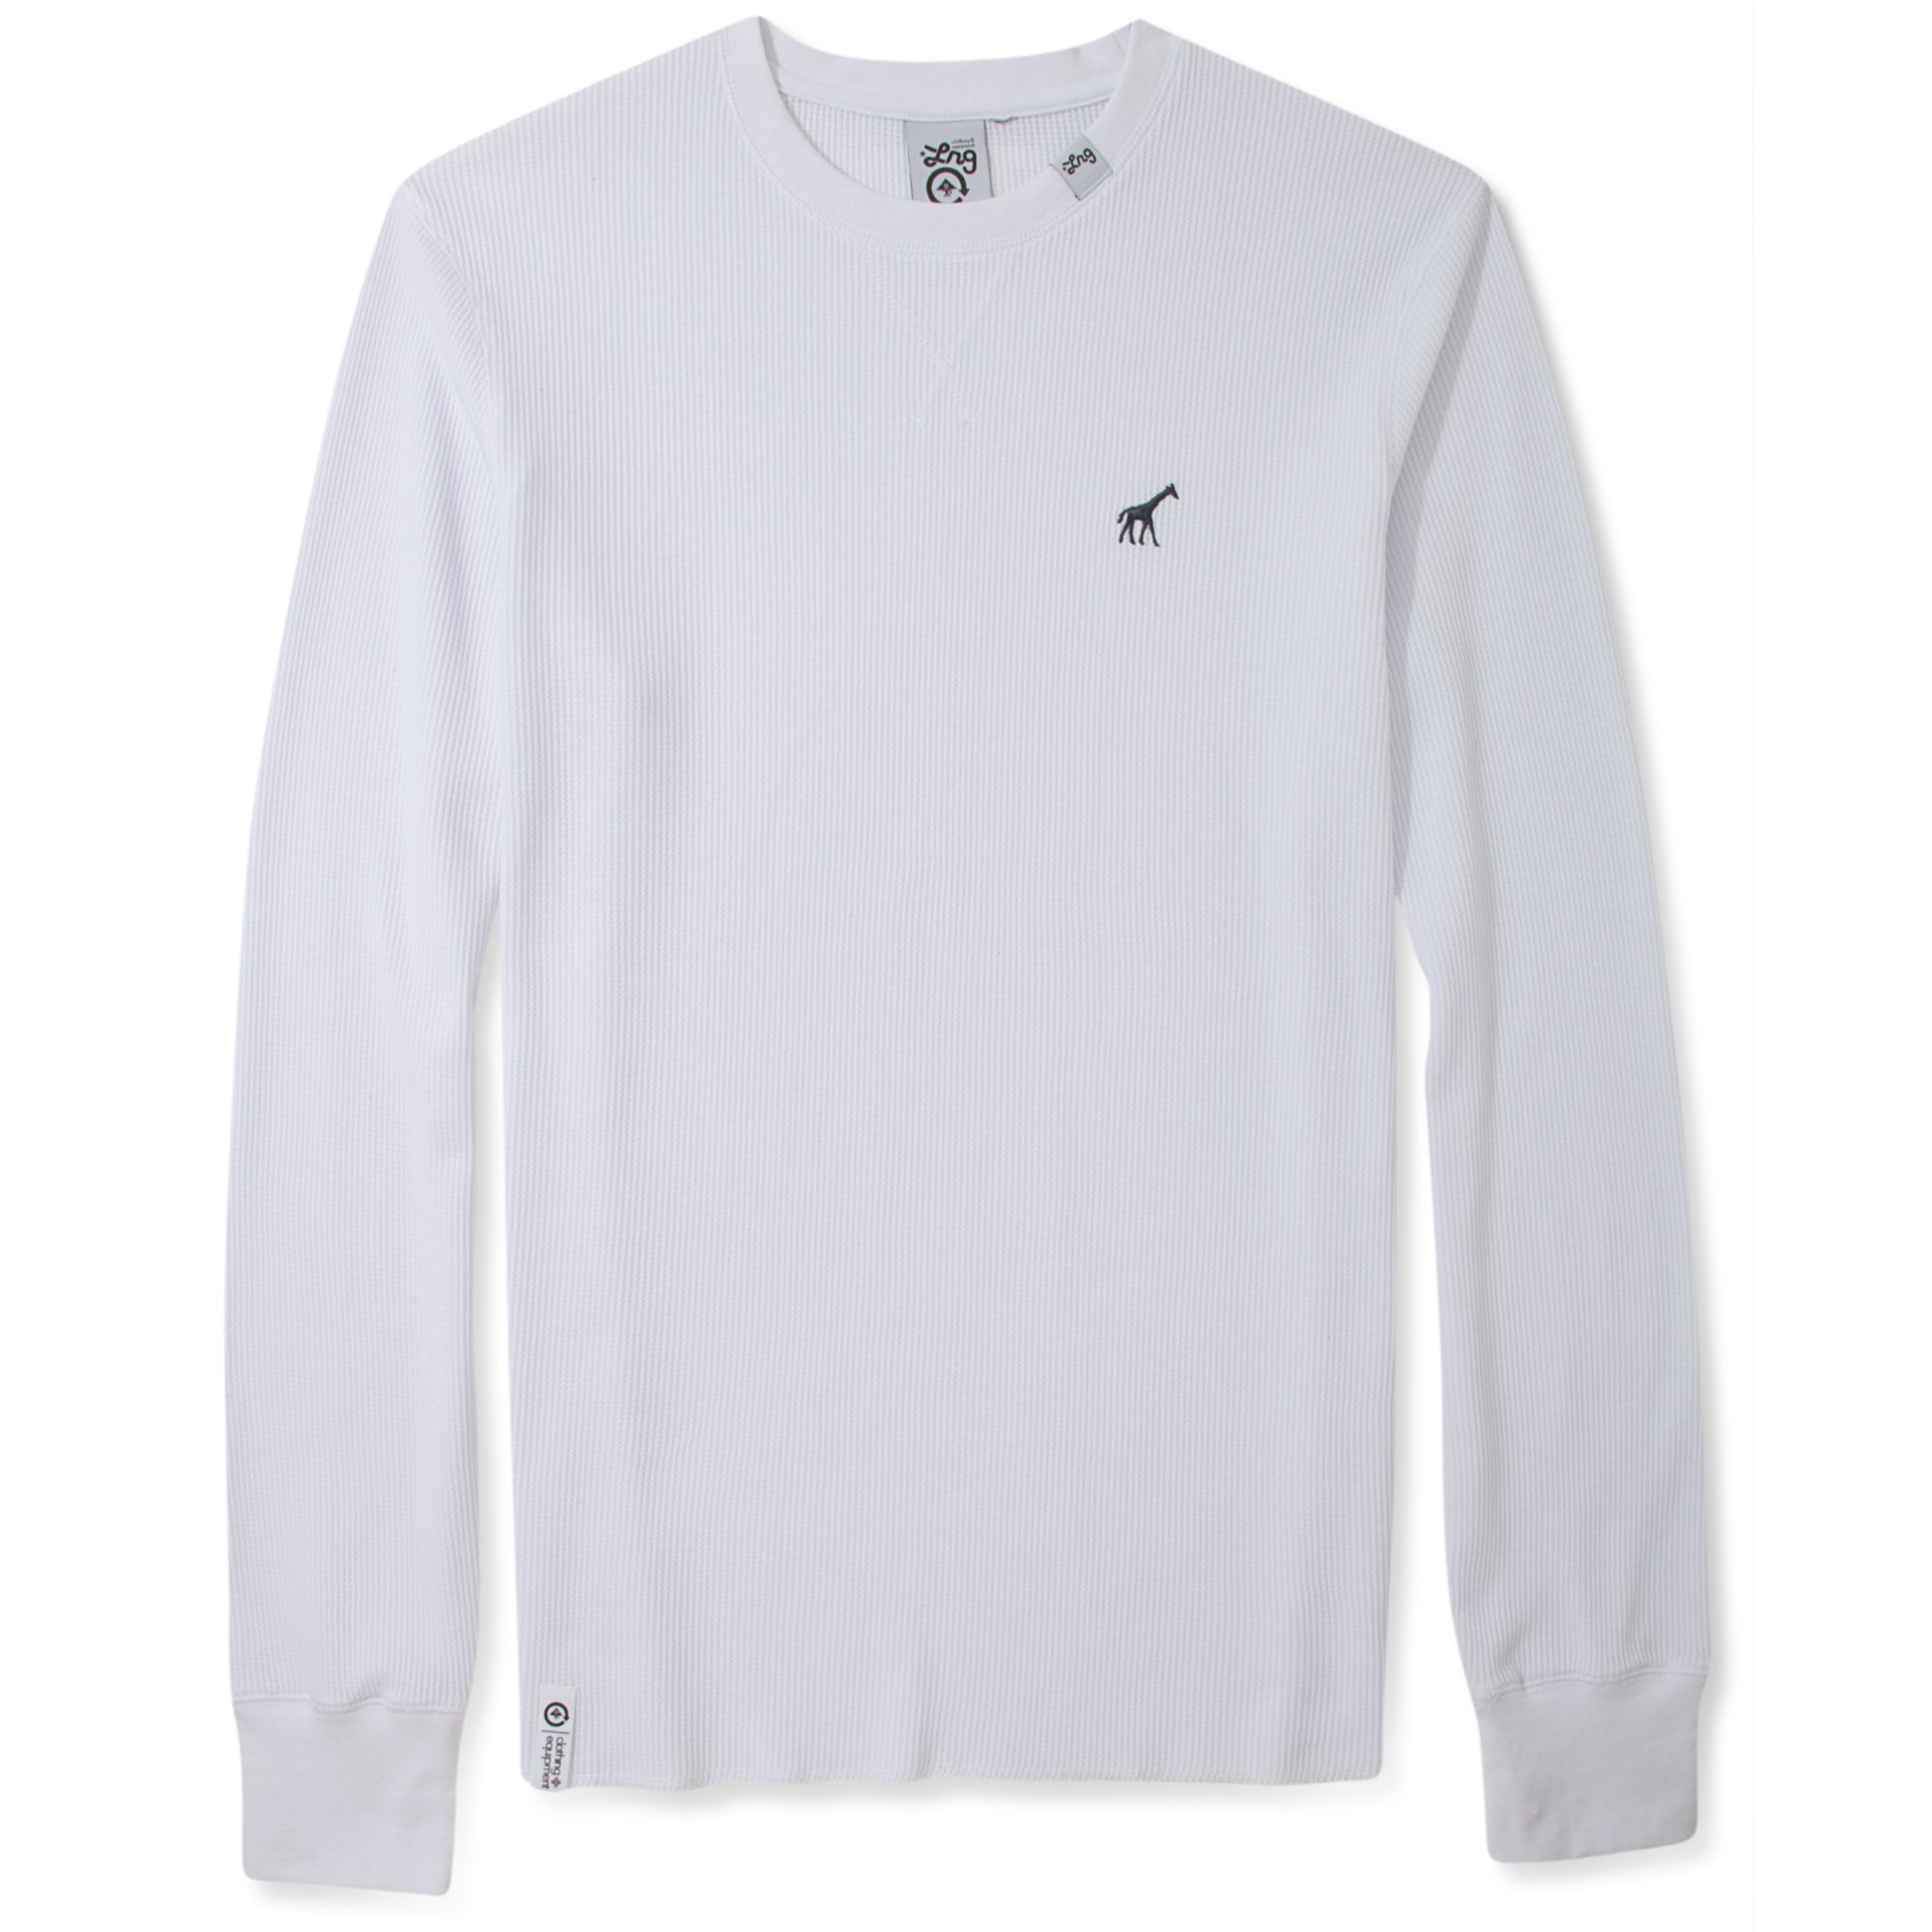 Lyst Lrg Core Collection Thermal Tshirt In White For Men